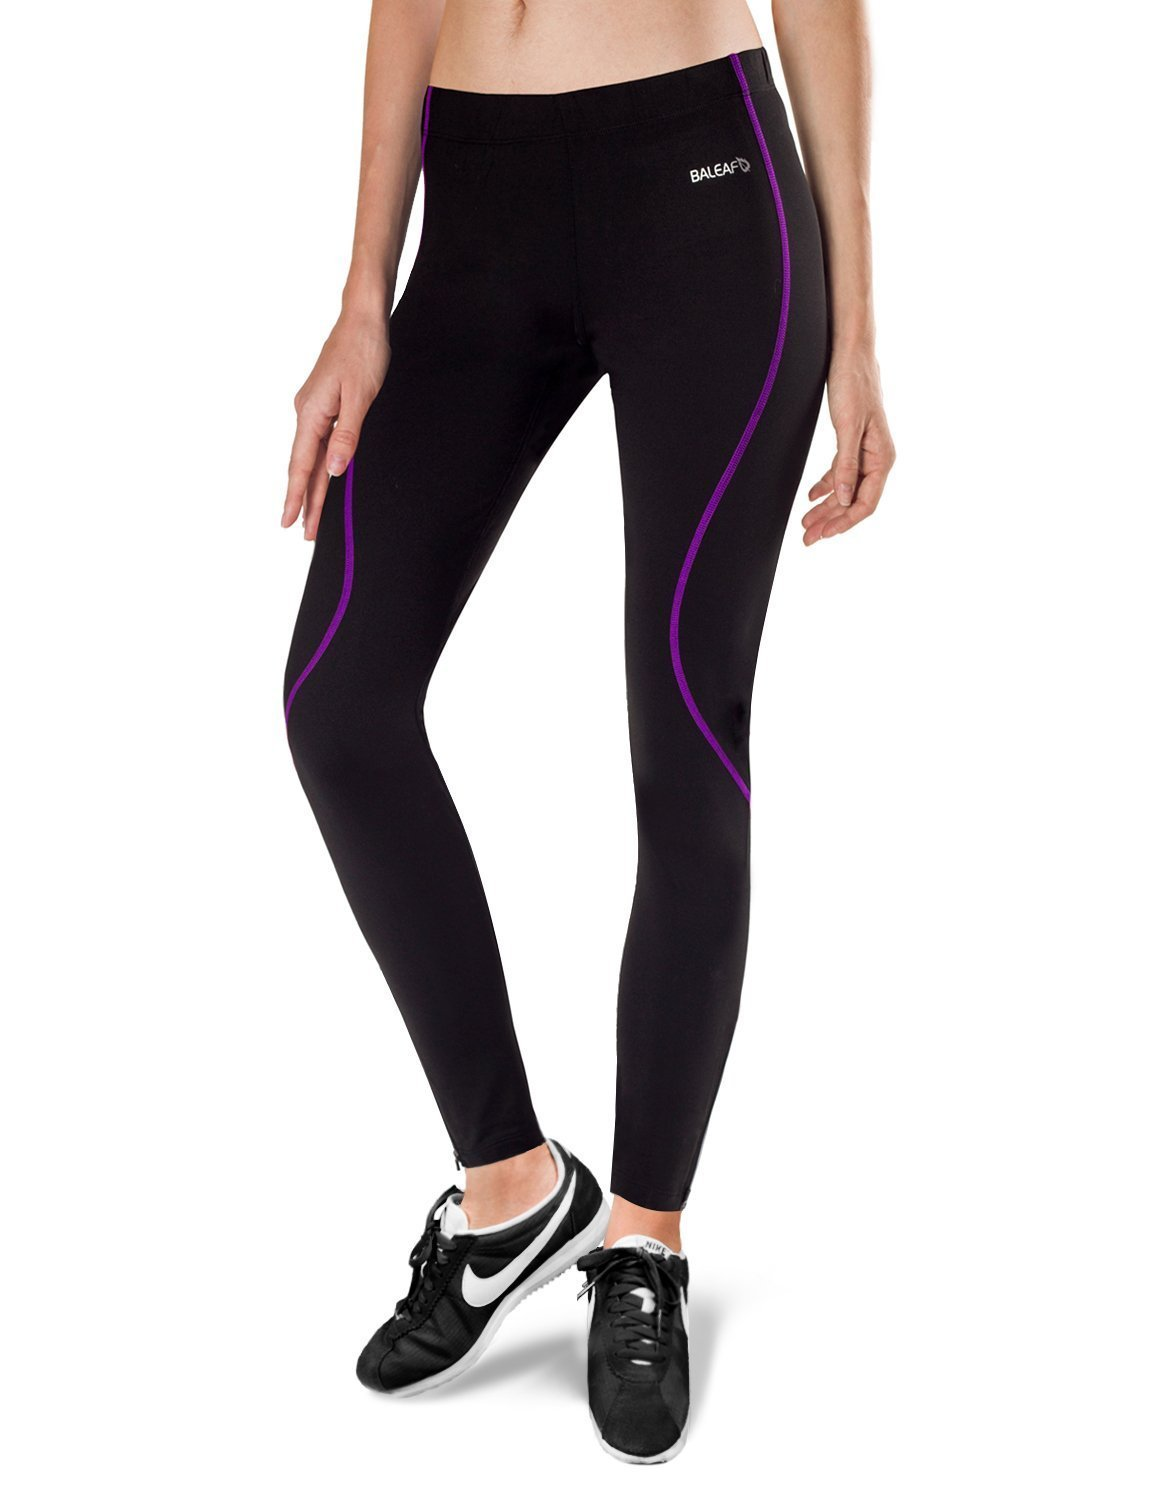 985df2b51eea23 Get Quotations · Baleaf Women's Thermal Fleece Athletic Running Cycling  Tights